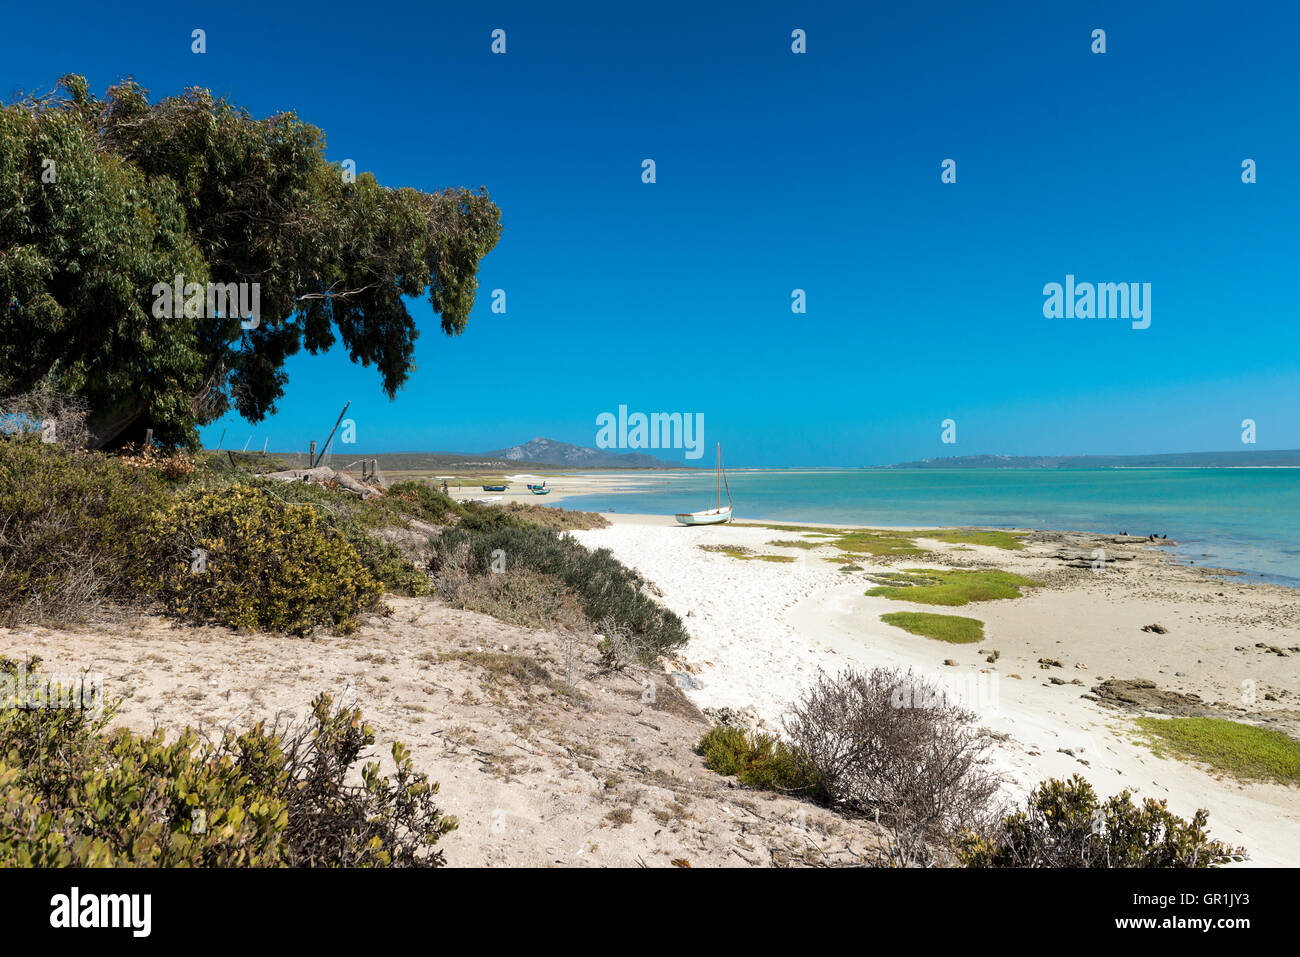 View over Langebaan lagoon, West Coast National Park, South Africa - Stock Image